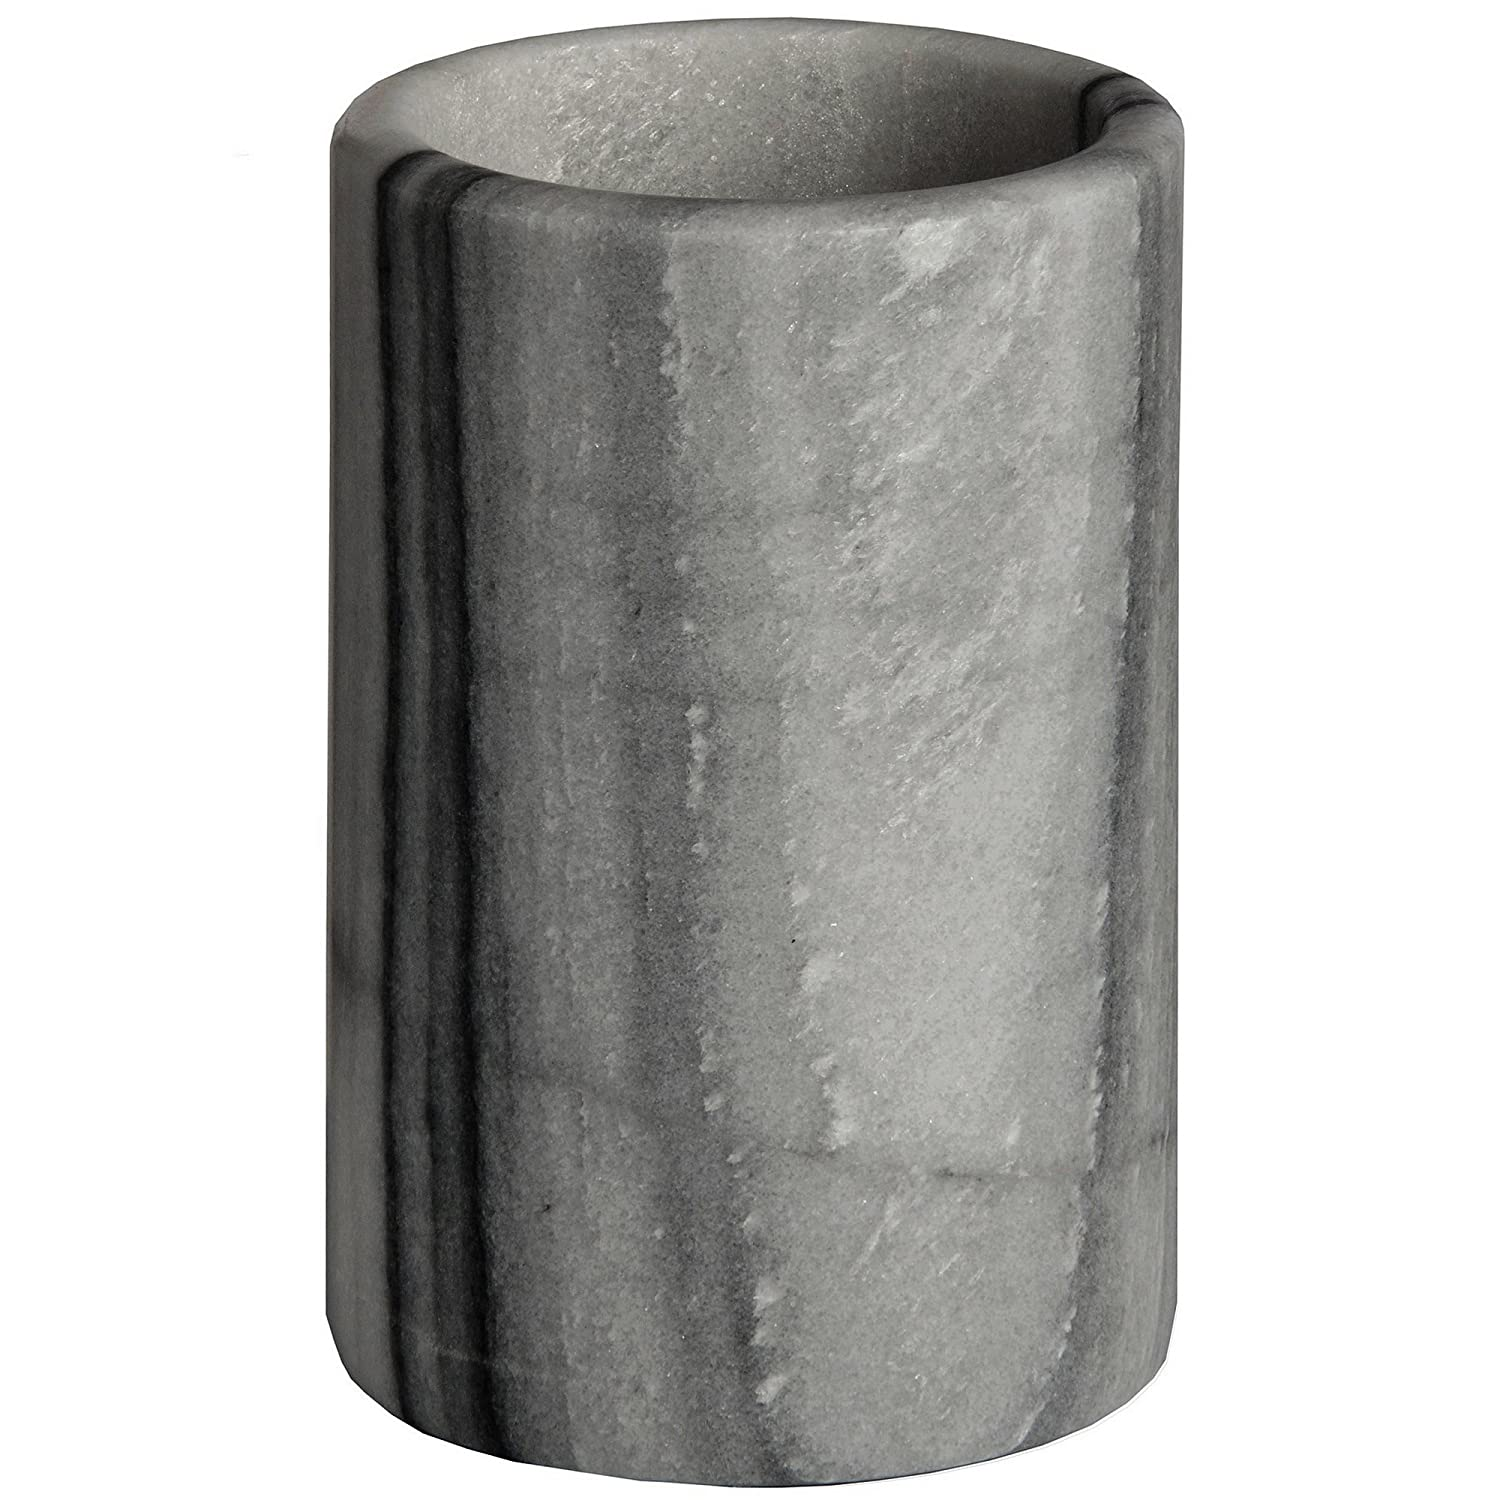 Hill Interiors Marble Utensils Holder (One Size) (Grey) UTHI2044_1